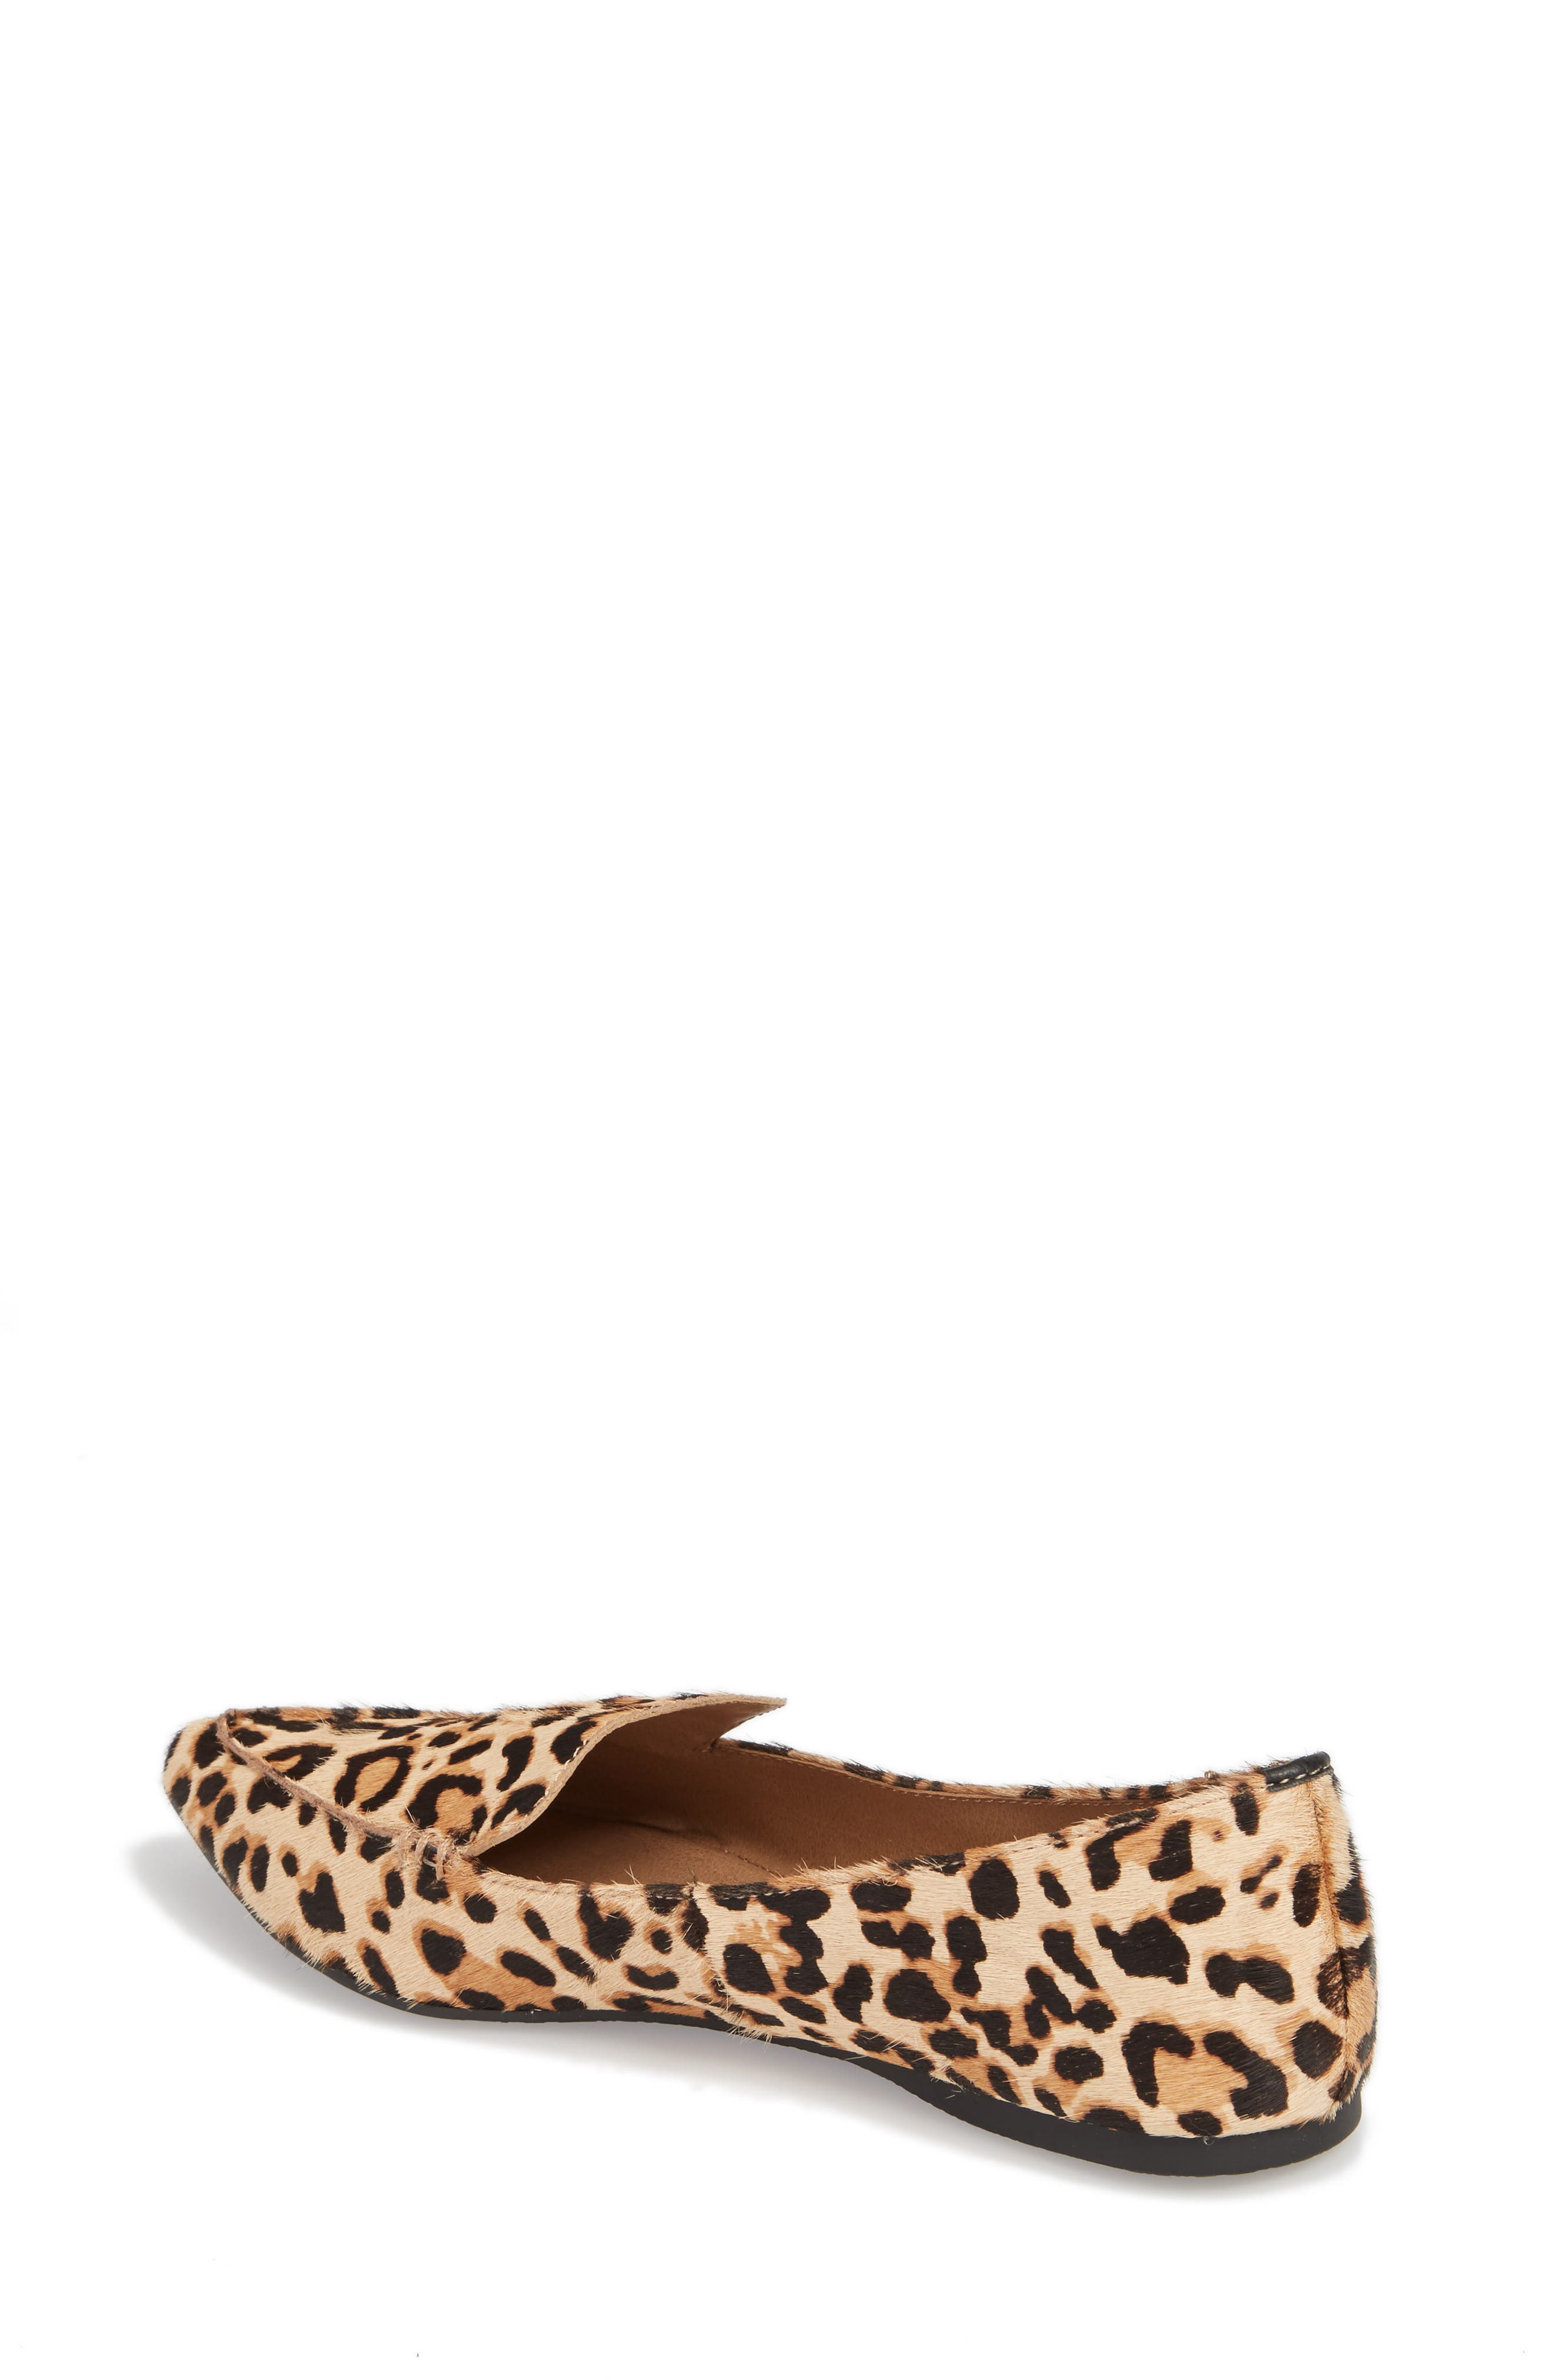 Alternate Image 2  - Steve Madden Feather-L Genuine Calf Hair Loafer Flat (Women)